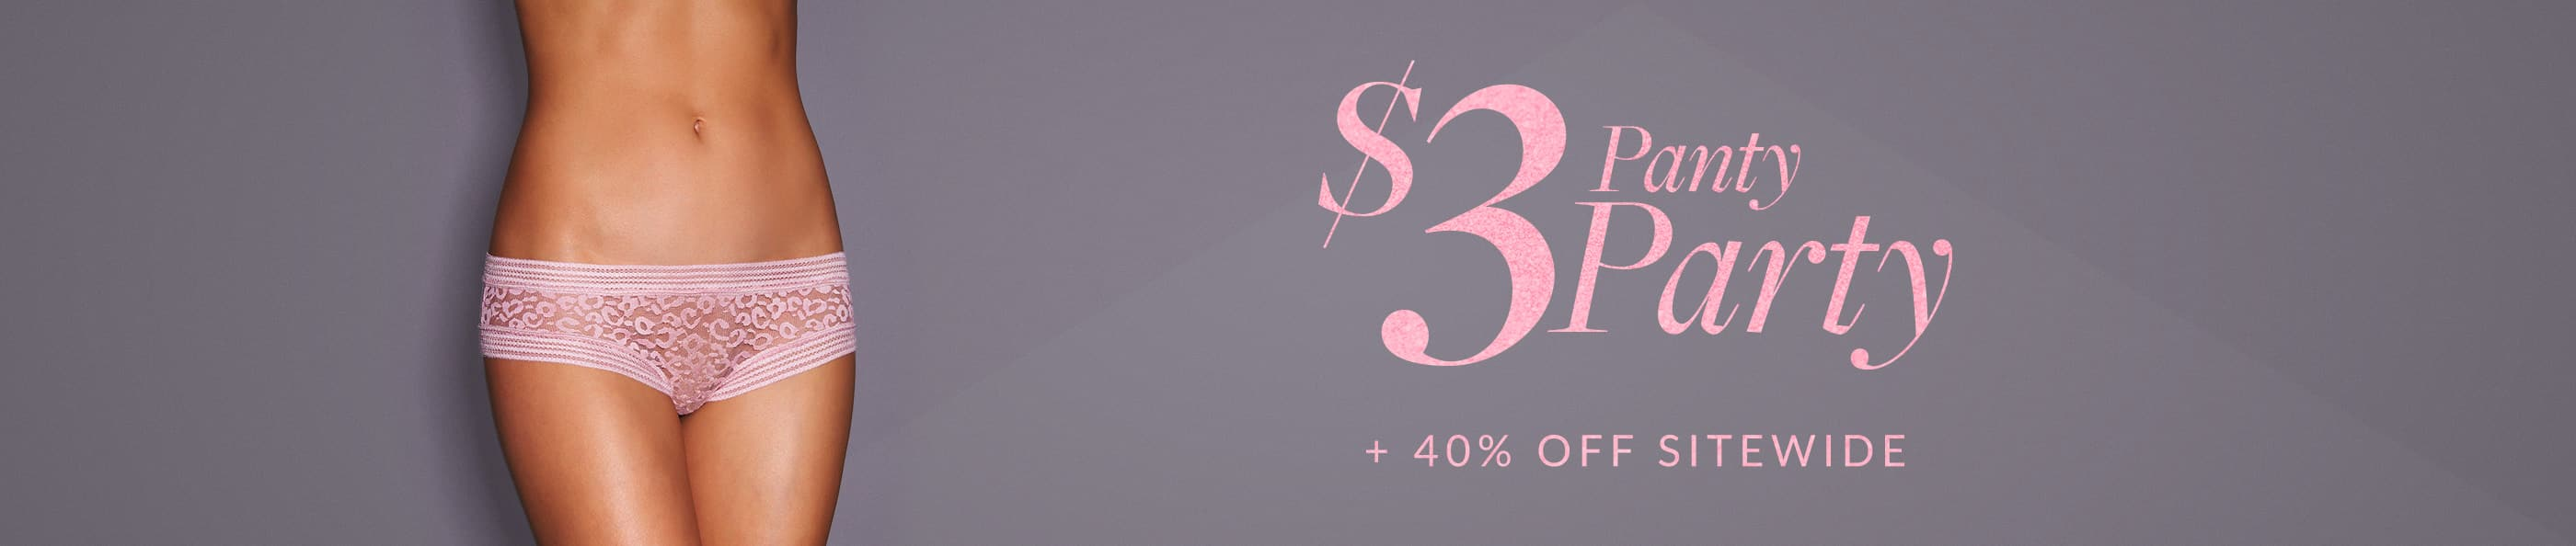 Fredericks of Hollywood : $3 Panty Sale + 40% off sitewide (no code needed) FS Orders $75+